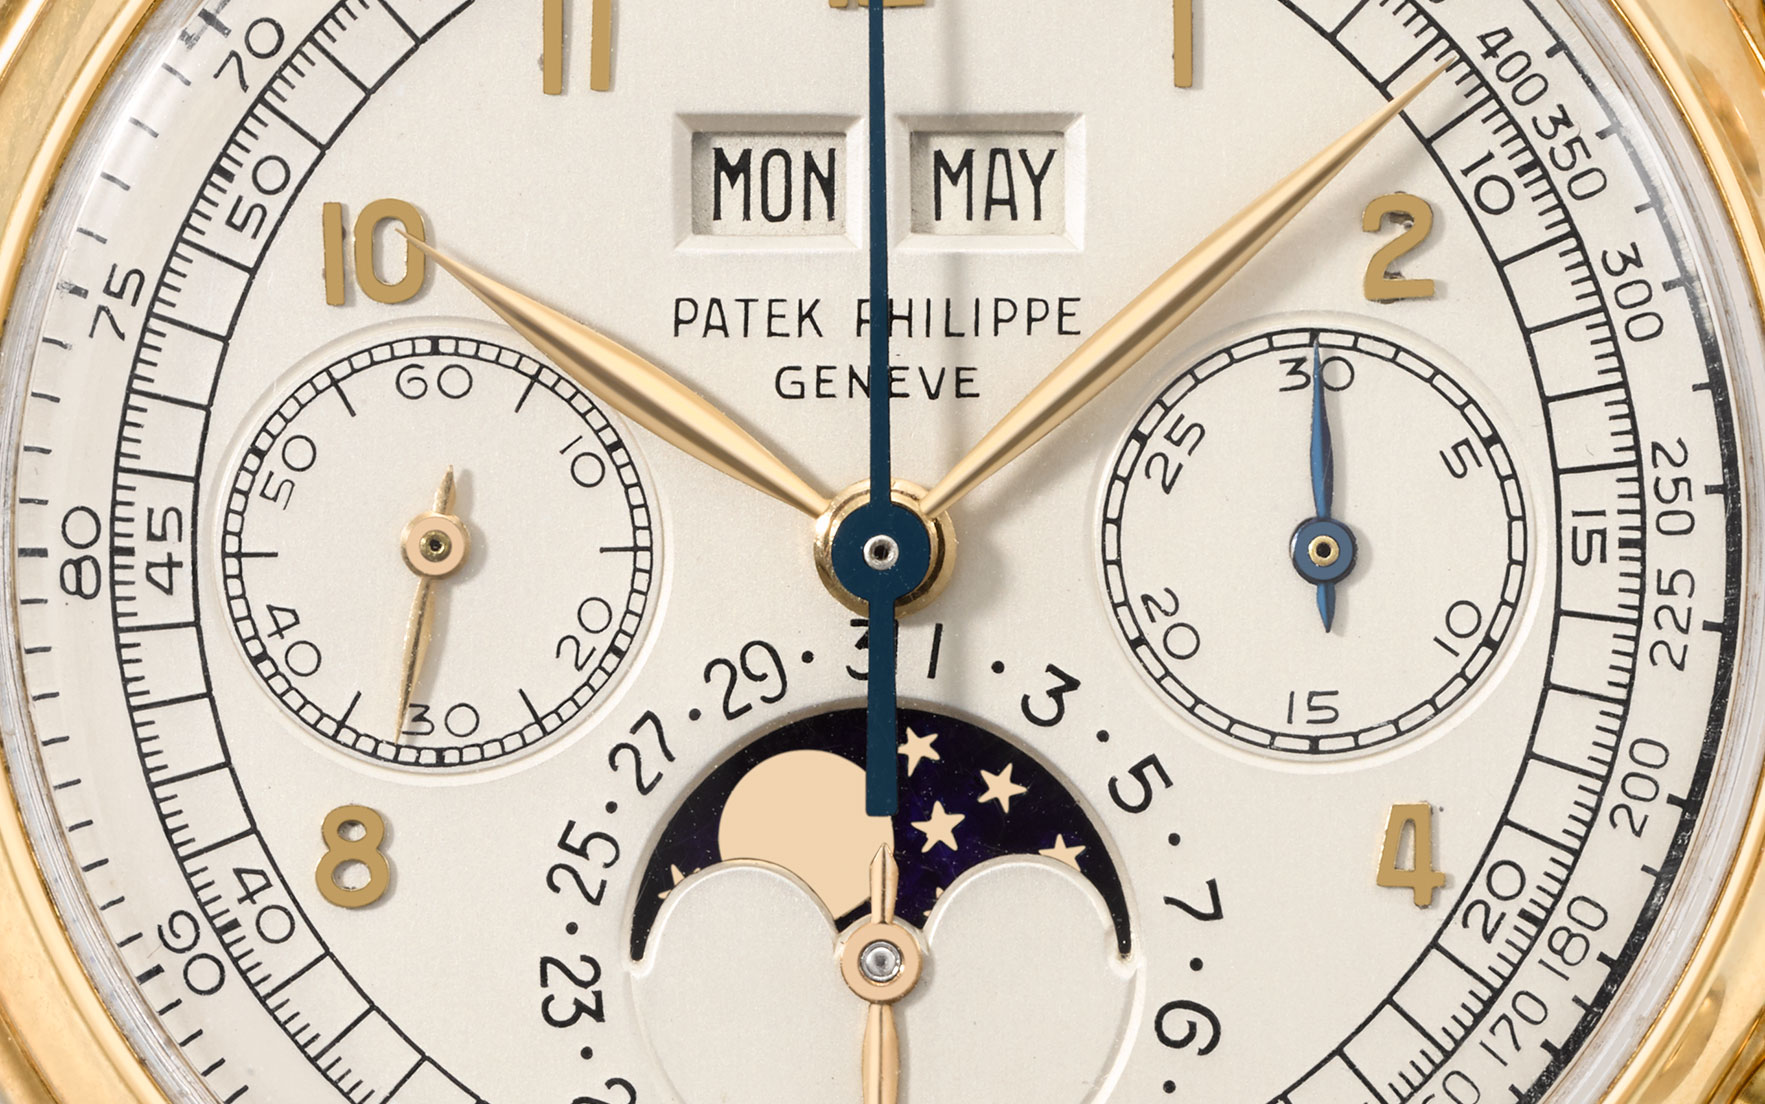 The collector's guide to Patek Philippe perpetual chronograph wristwatches